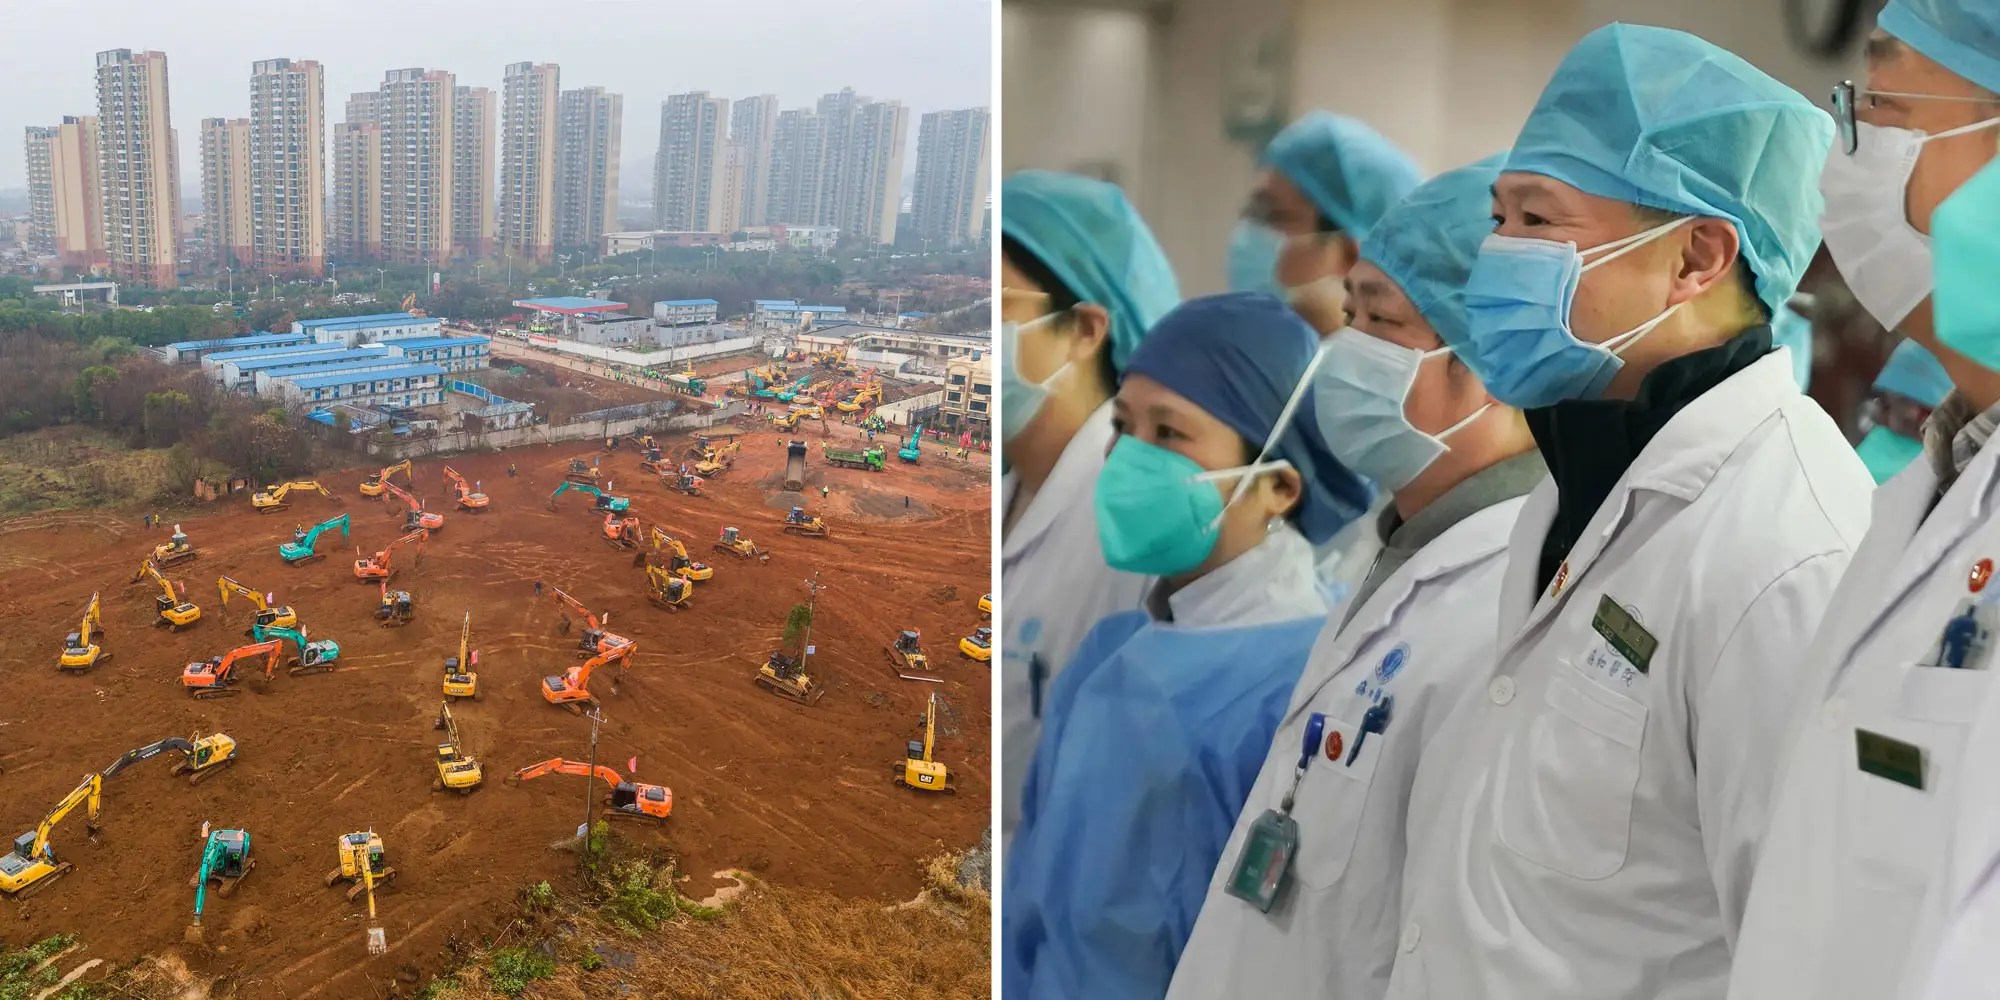 China coronavirus: Wuhan panic-building new hospital in 6 days ...